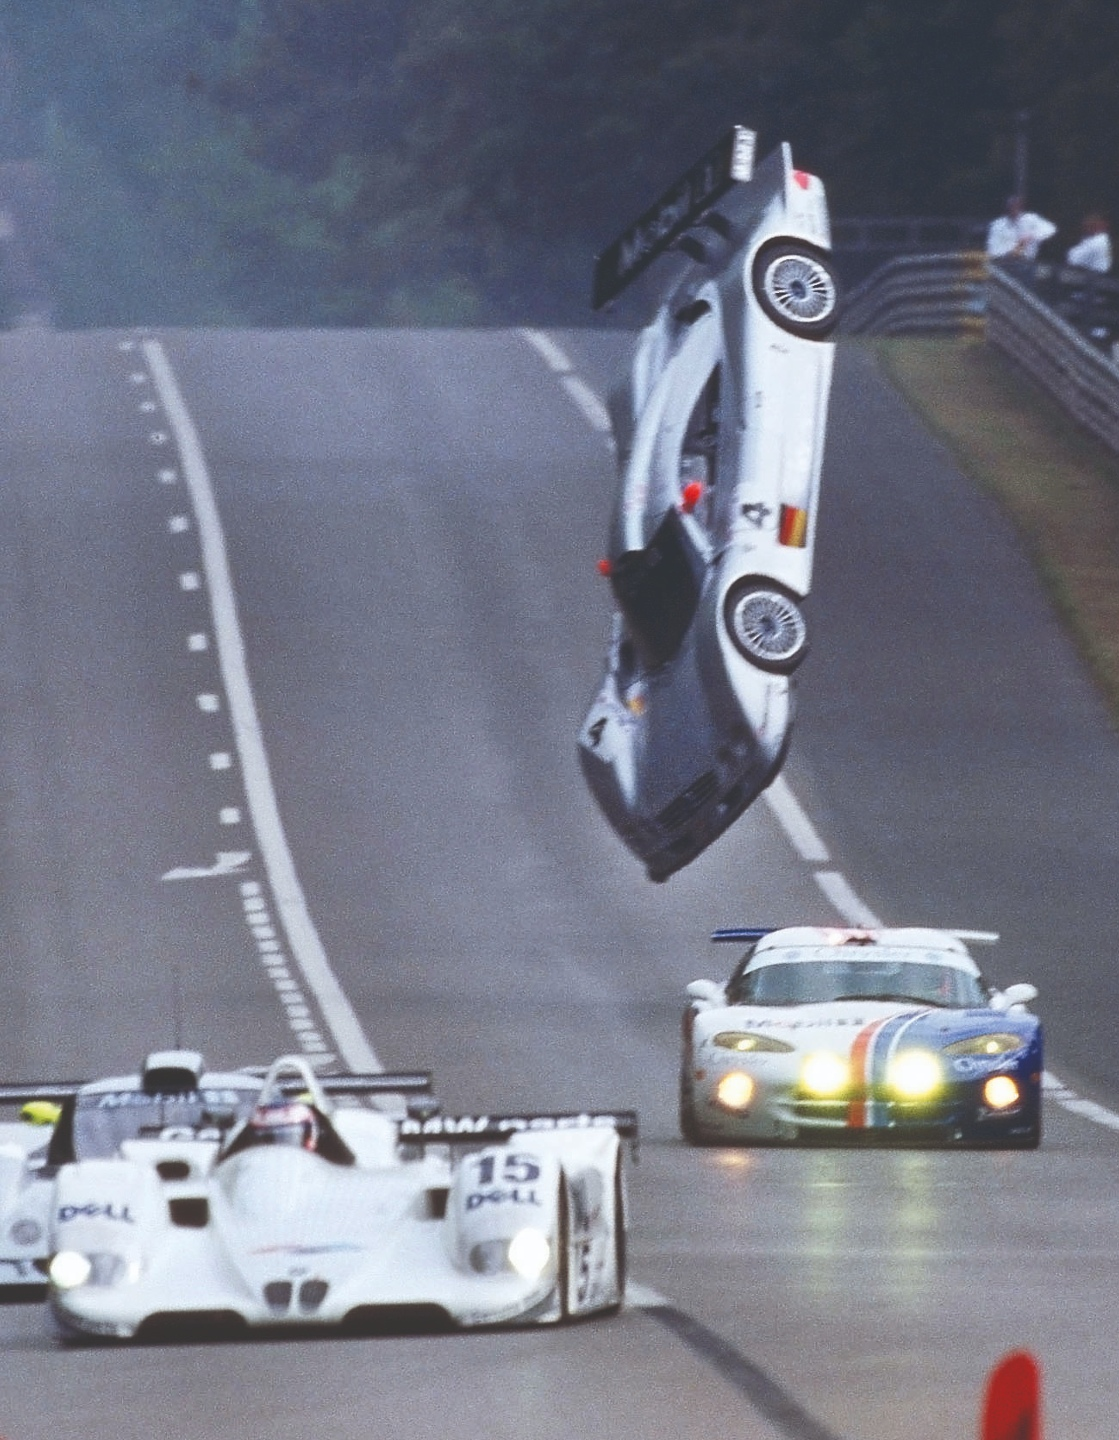 Mark Webber's Mercedes CLR flips on the Mulsanne Straight at ahead of the 1999 Le Mans 24 Hours race